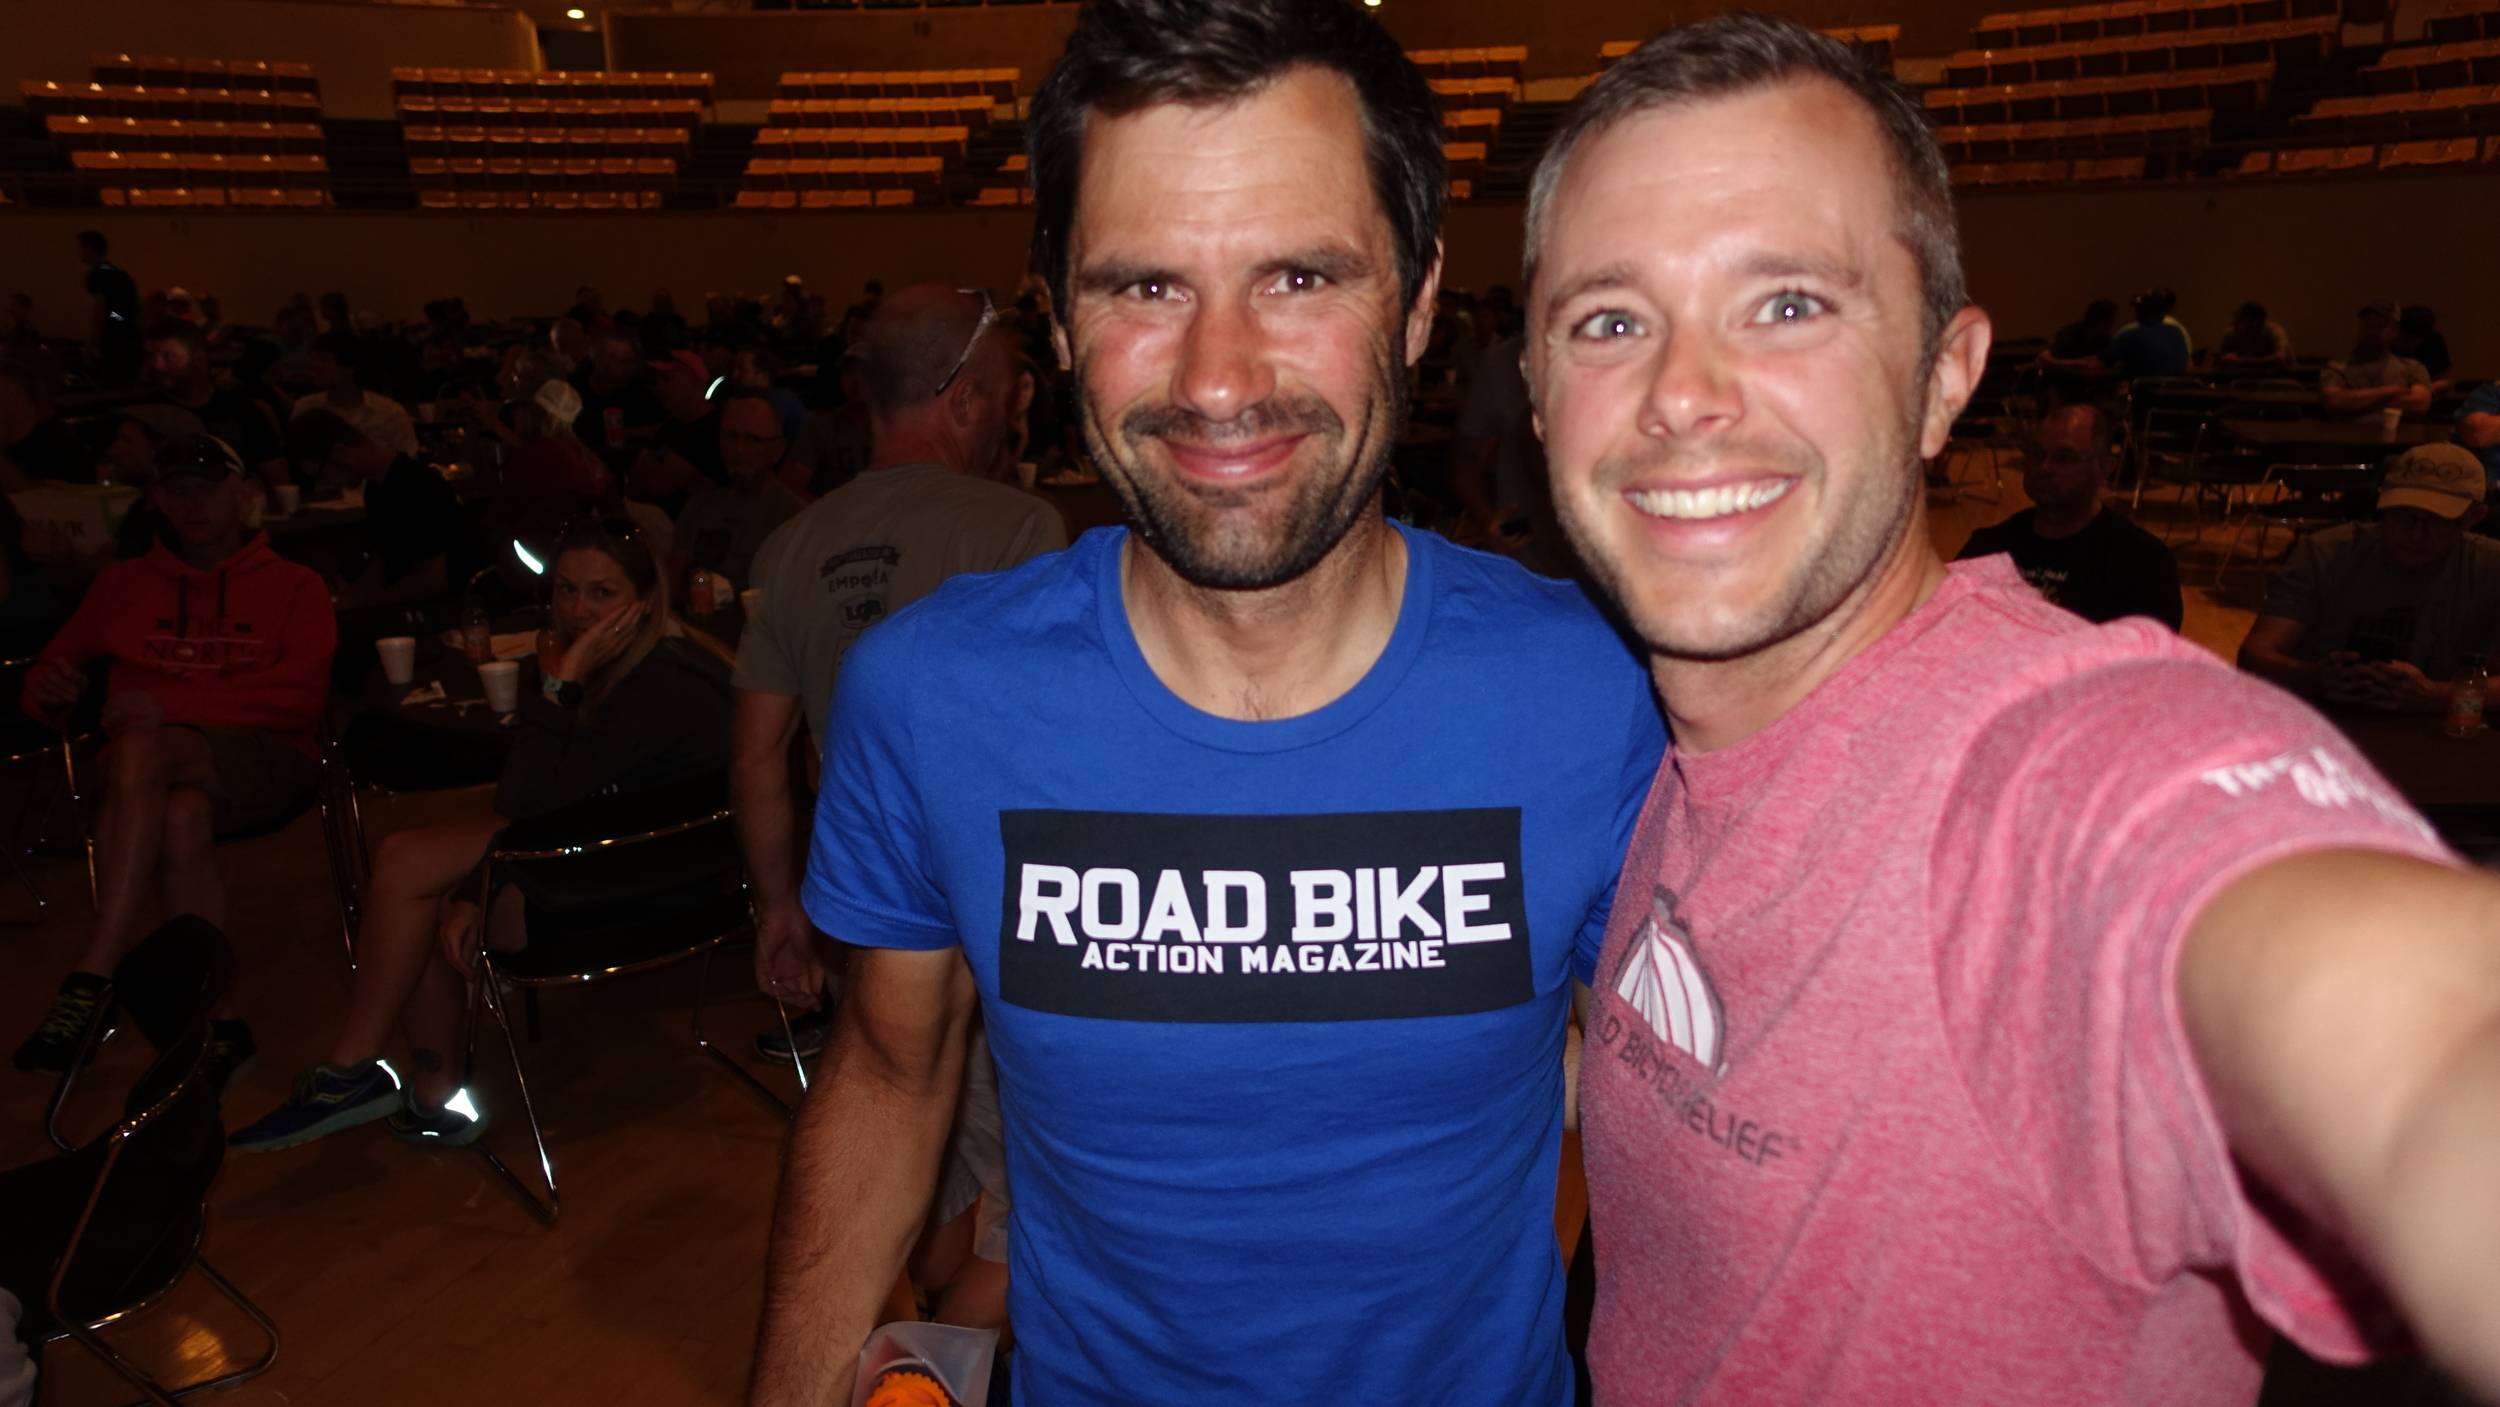 Neil Shirley had a mechanical-free Dirty Kanza. If you ever get a chance to meet this Road Bike Action editor, you'll encounter one of the nicest guys in cycling.